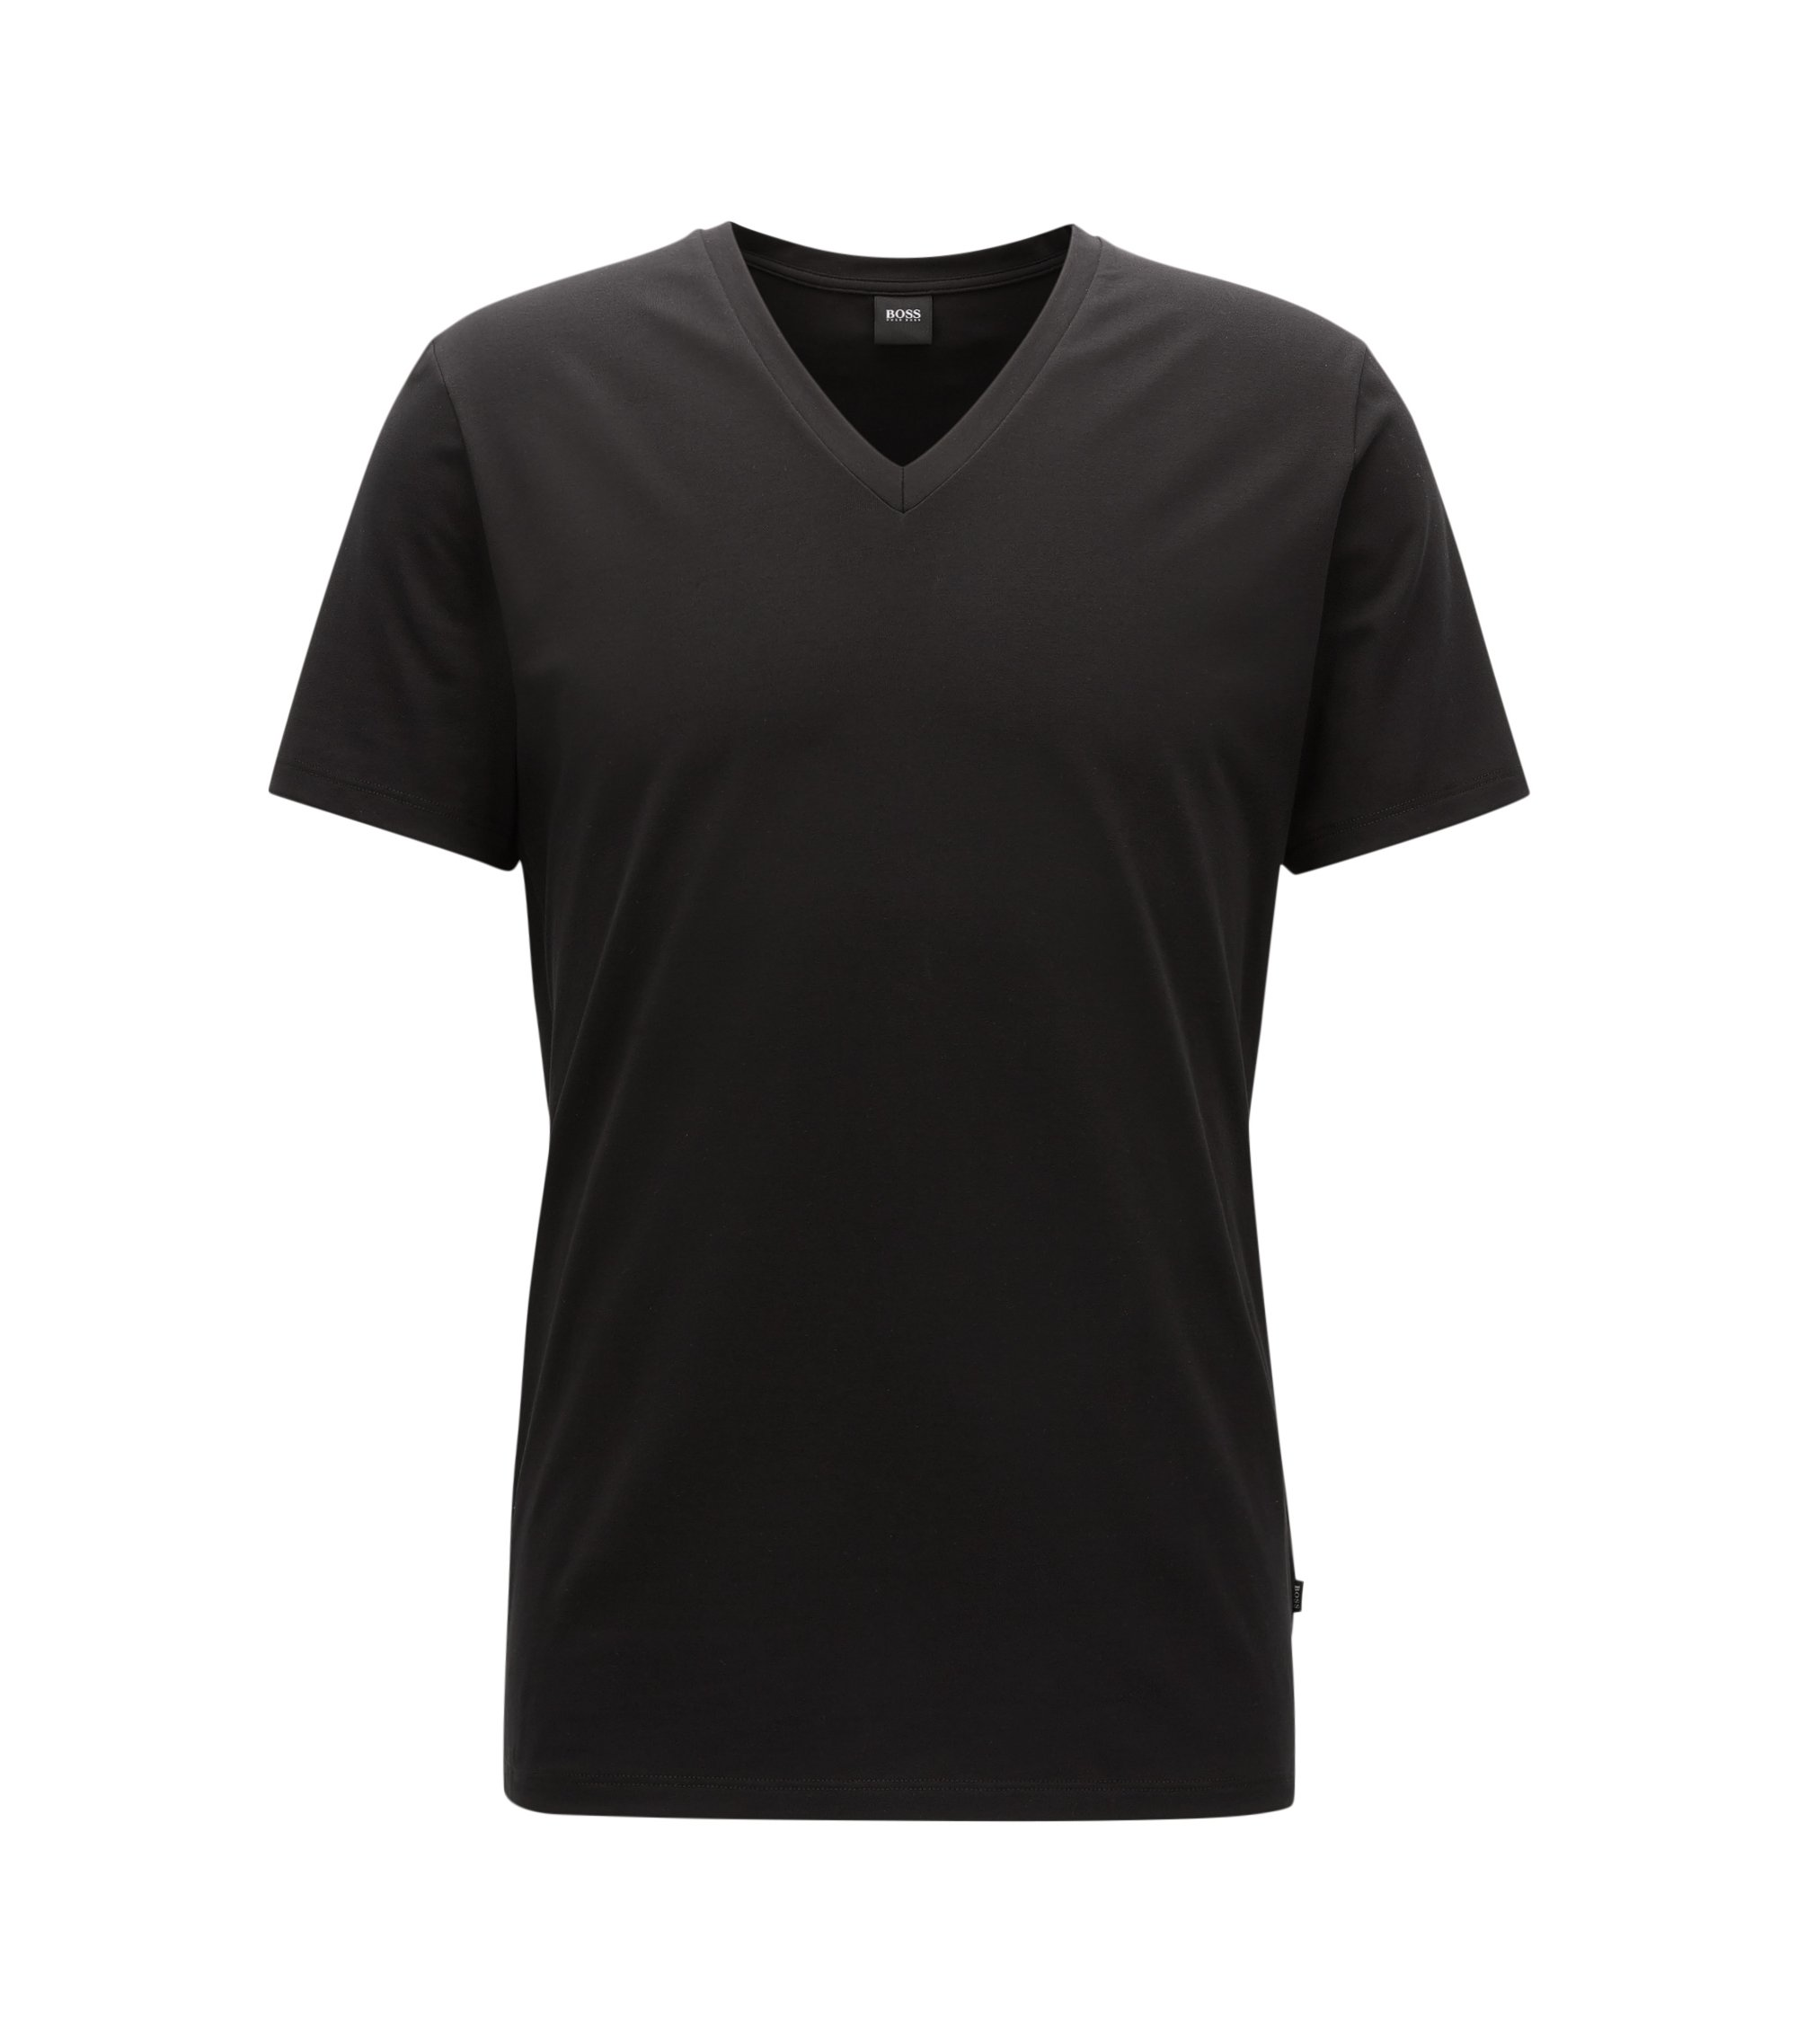 V-neck underwear T-shirt in Egyptian stretch cotton, Black